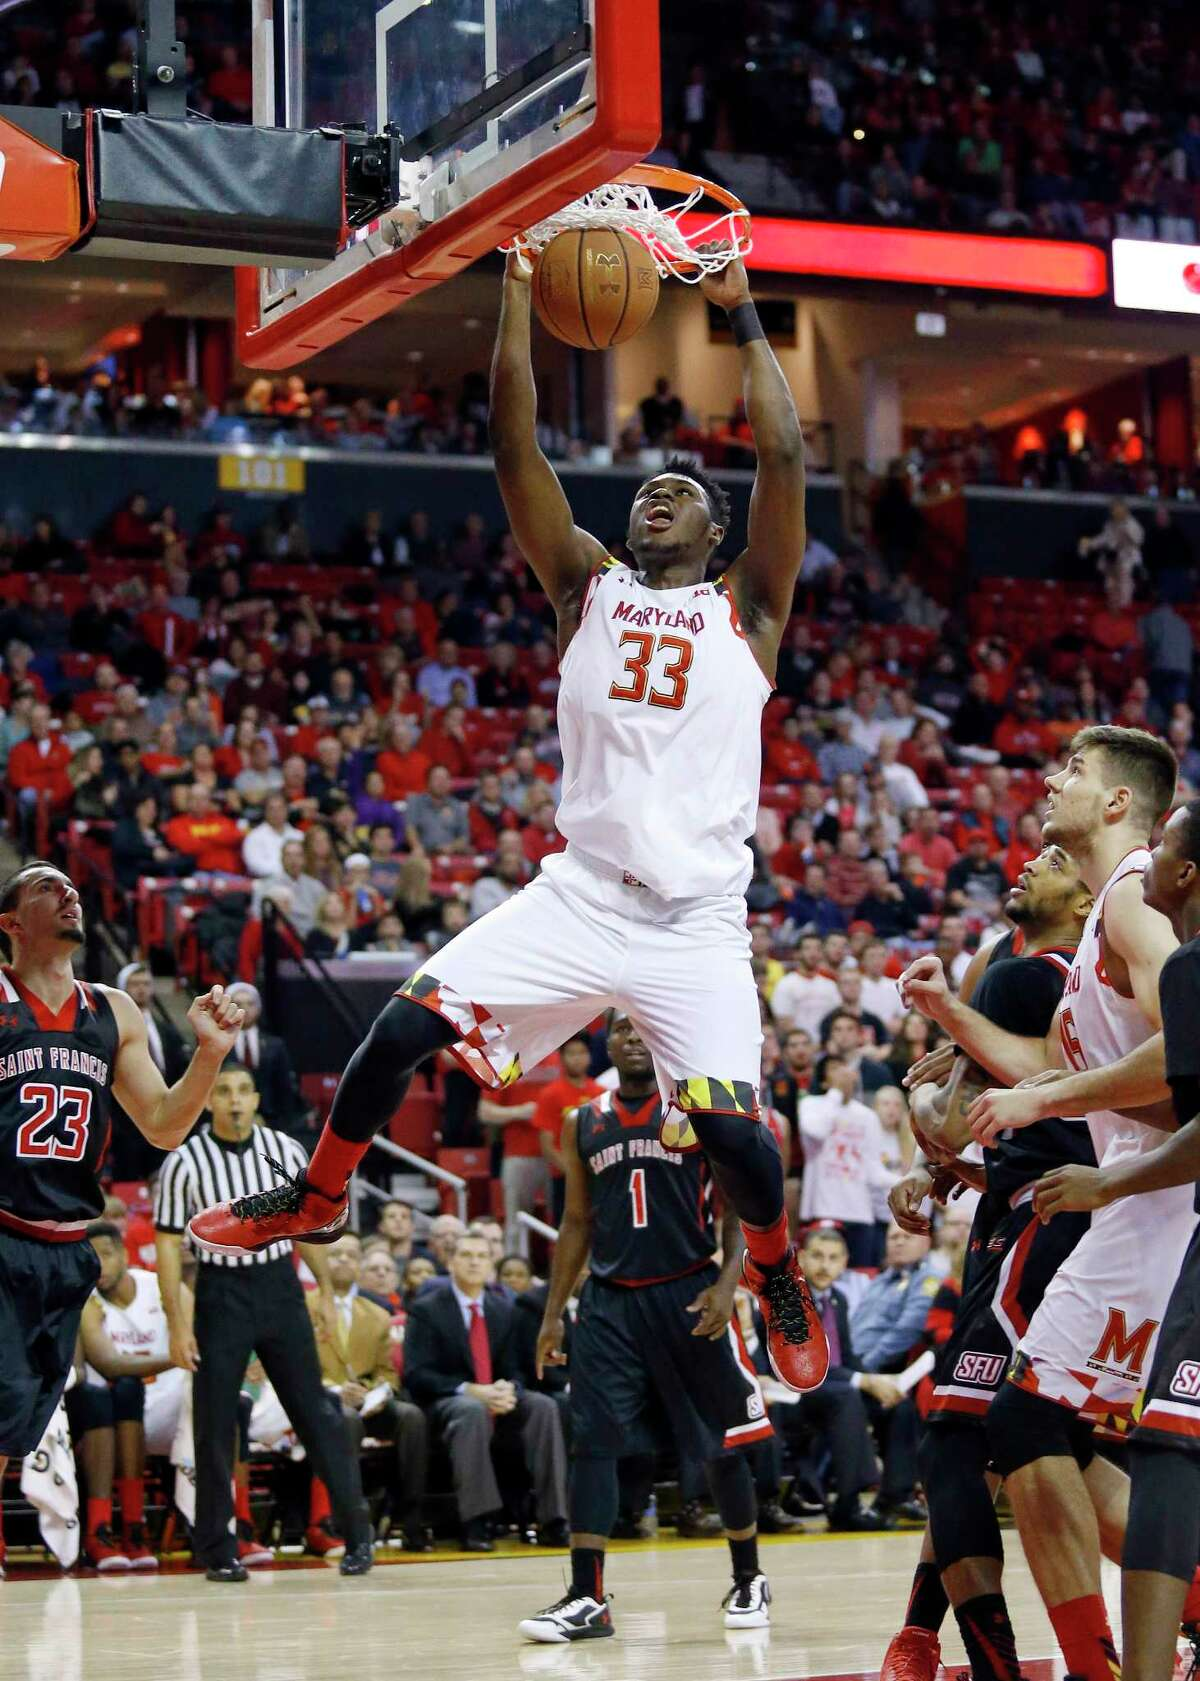 Maryland center Diamond Stone (33) dunks the ball during a game against St. Francis earlier this season.